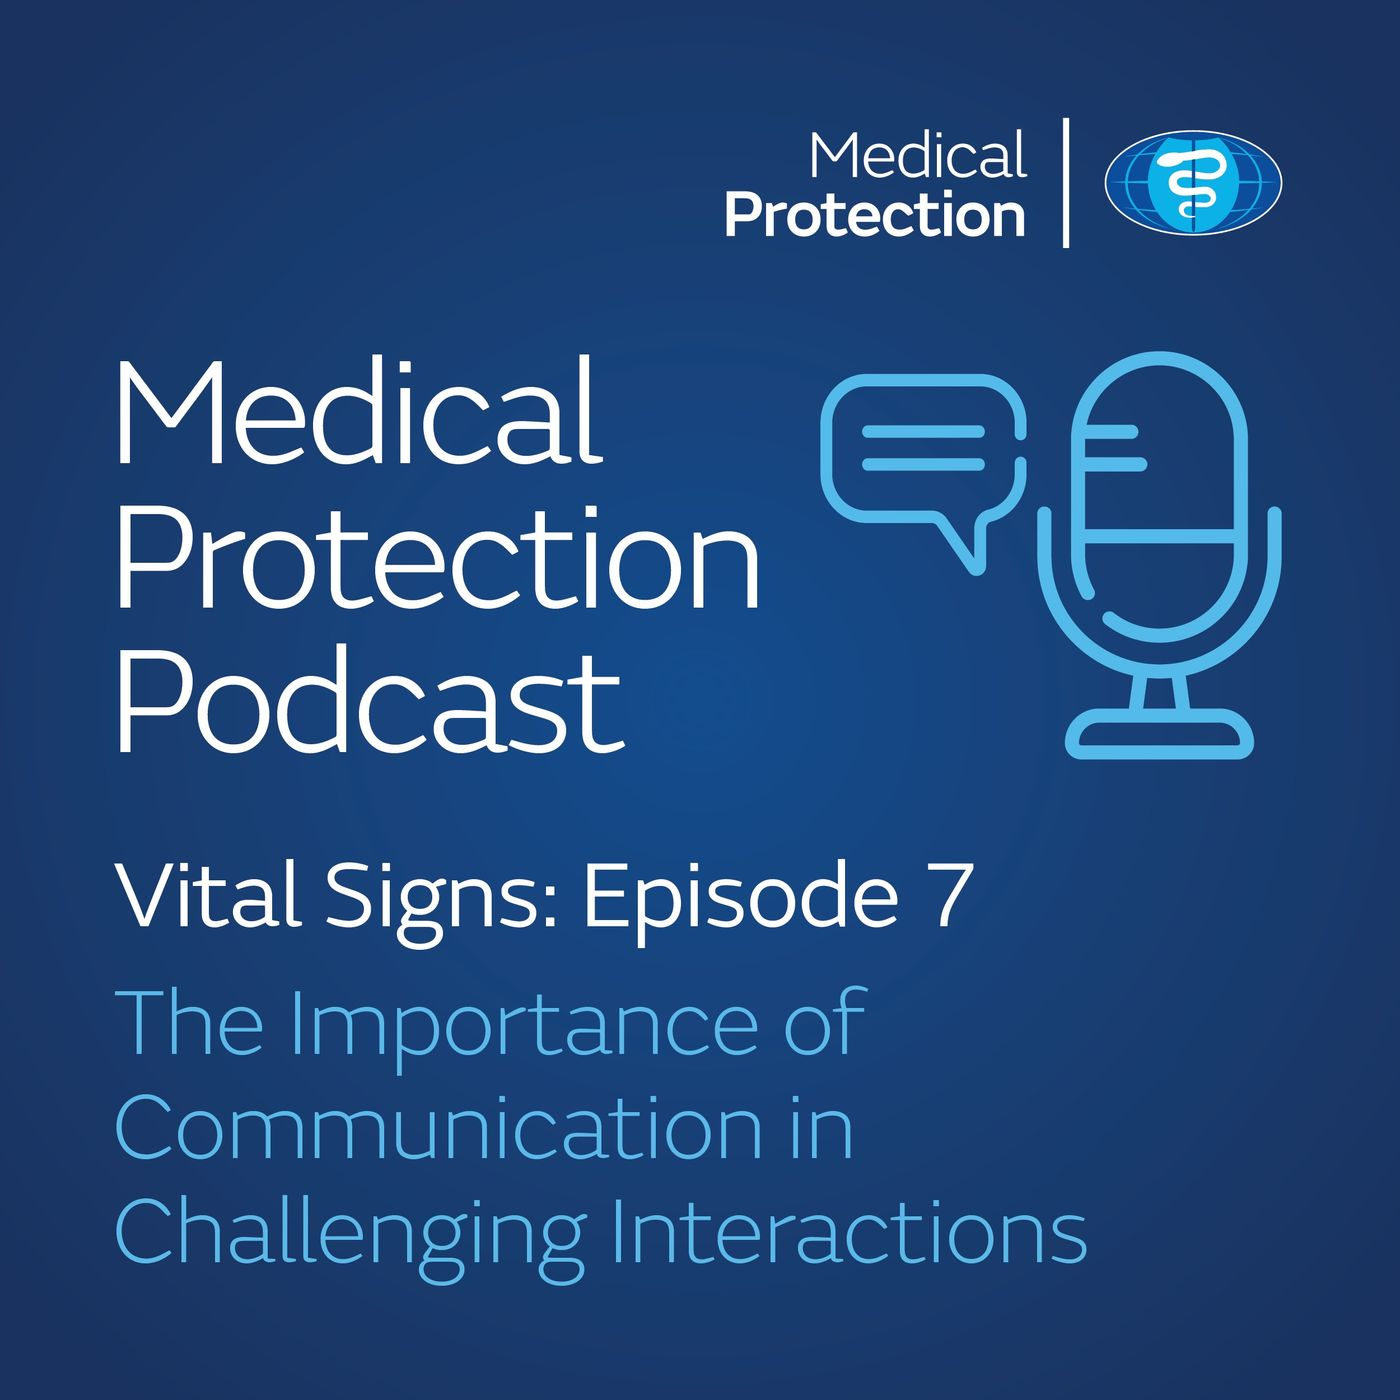 Vital Signs episode 7: The Importance of Communication in Challenging Interactions